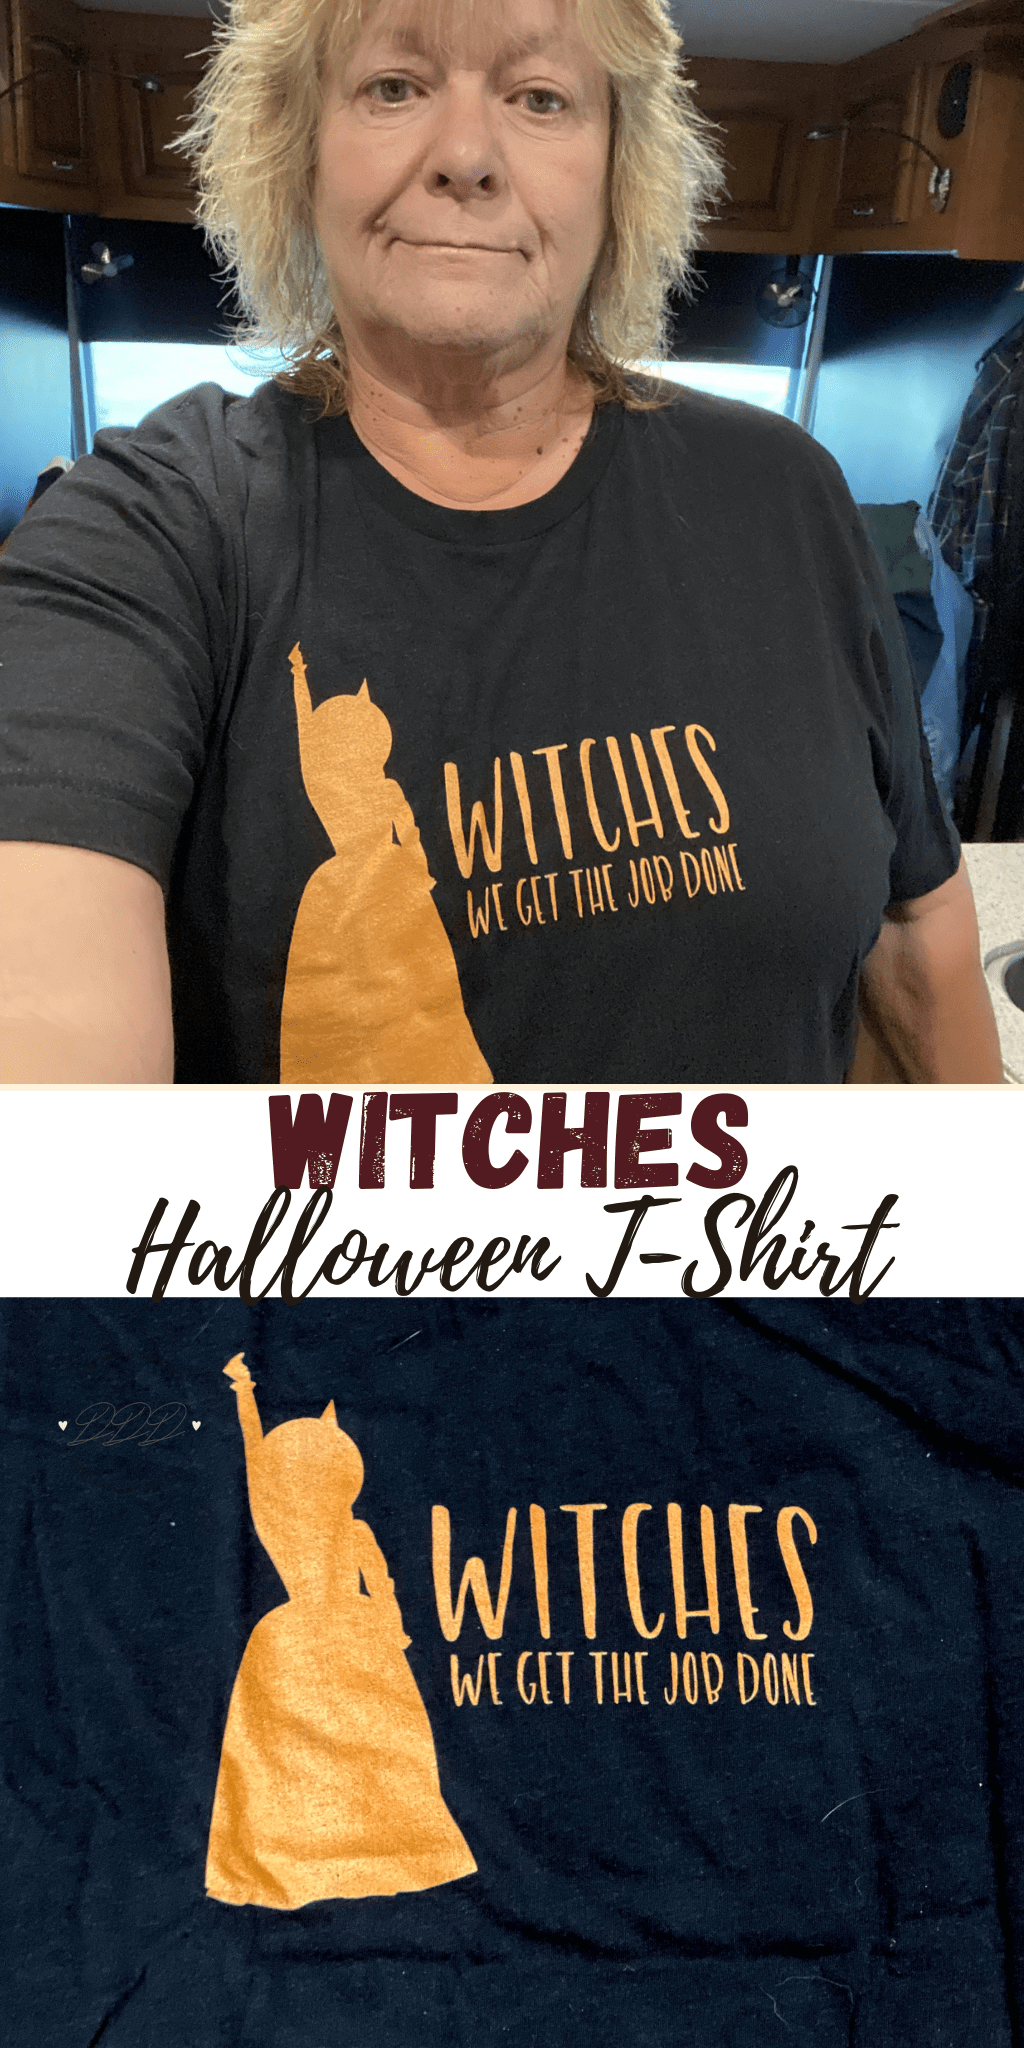 Witches Halloween T-Shirt